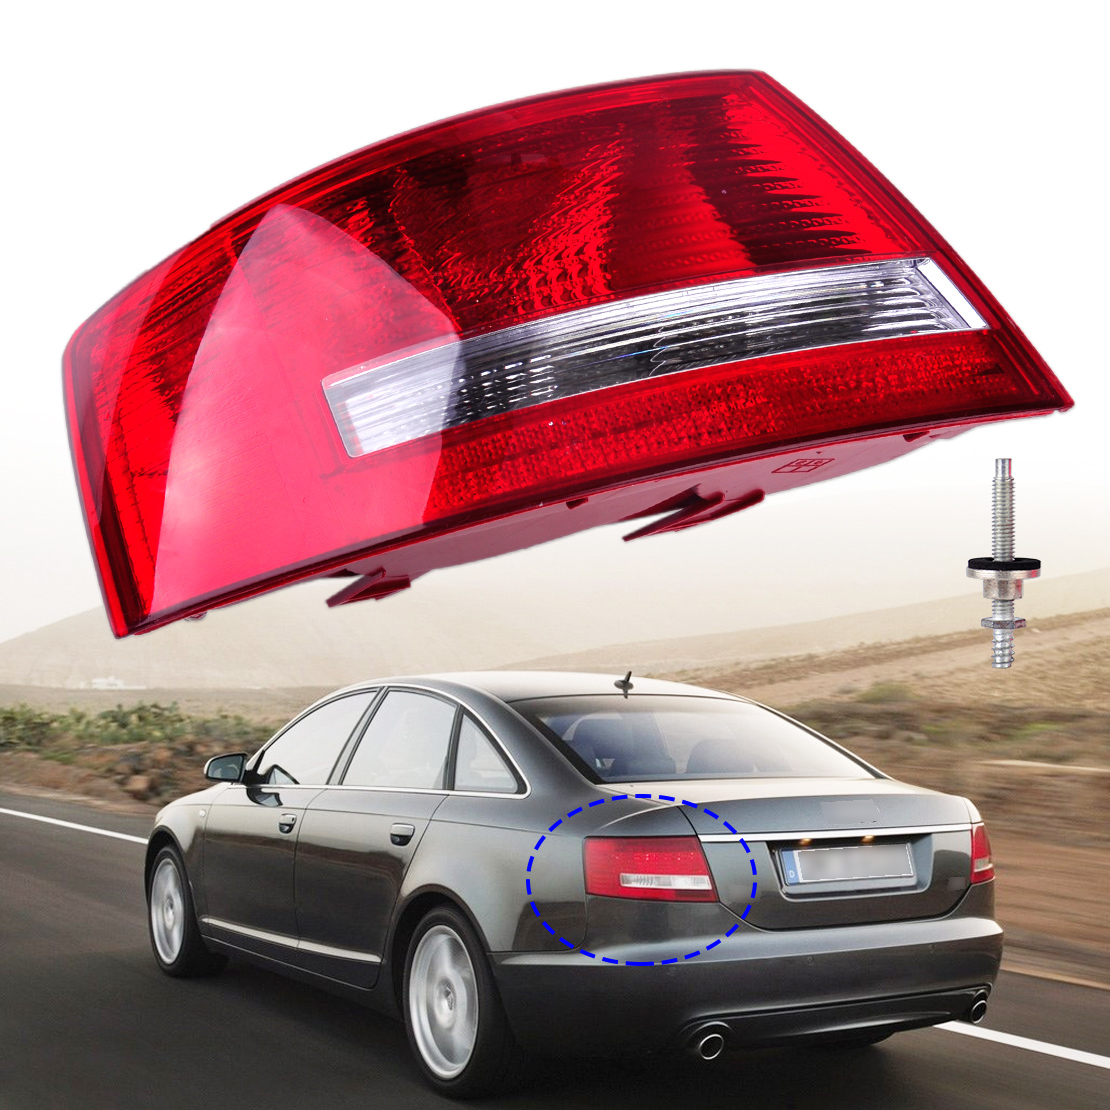 Left Tail Light Assembly Lamp Housing without Bulb 4F5-945-095-L 4F5 945 095 D for Audi A6 Quattro A6 2005 2006 2007 2008 Sedan free shipping for skoda octavia sedan a5 2005 2006 2007 2008 left side rear lamp tail light